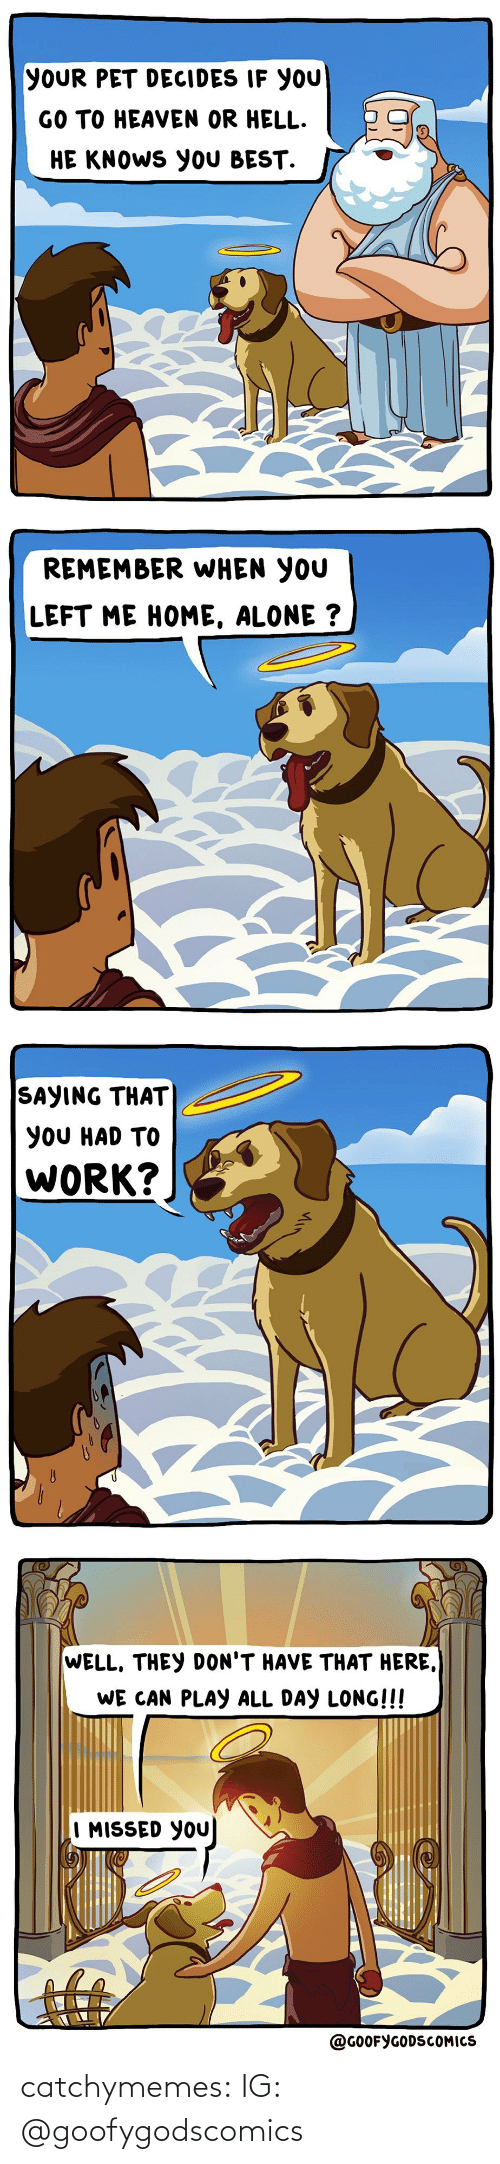 All Day Long: YOUR PET DECIDES IF YOU  GO TO HEAVEN OR HELL.  HE KNOWS YOU BEST.   REMEMBER WHEN YOU  LEFT ME HOME, ALONE ?   SAYING THAT  YOU HAD TO  WORK?   WELL, THEY DON'T HAVE THAT HERE,  WE CAN PLAY ALL DAY LONG!!!  I MISSED YOU  @GOOFYGODSCOMICS catchymemes:  IG: @goofygodscomics